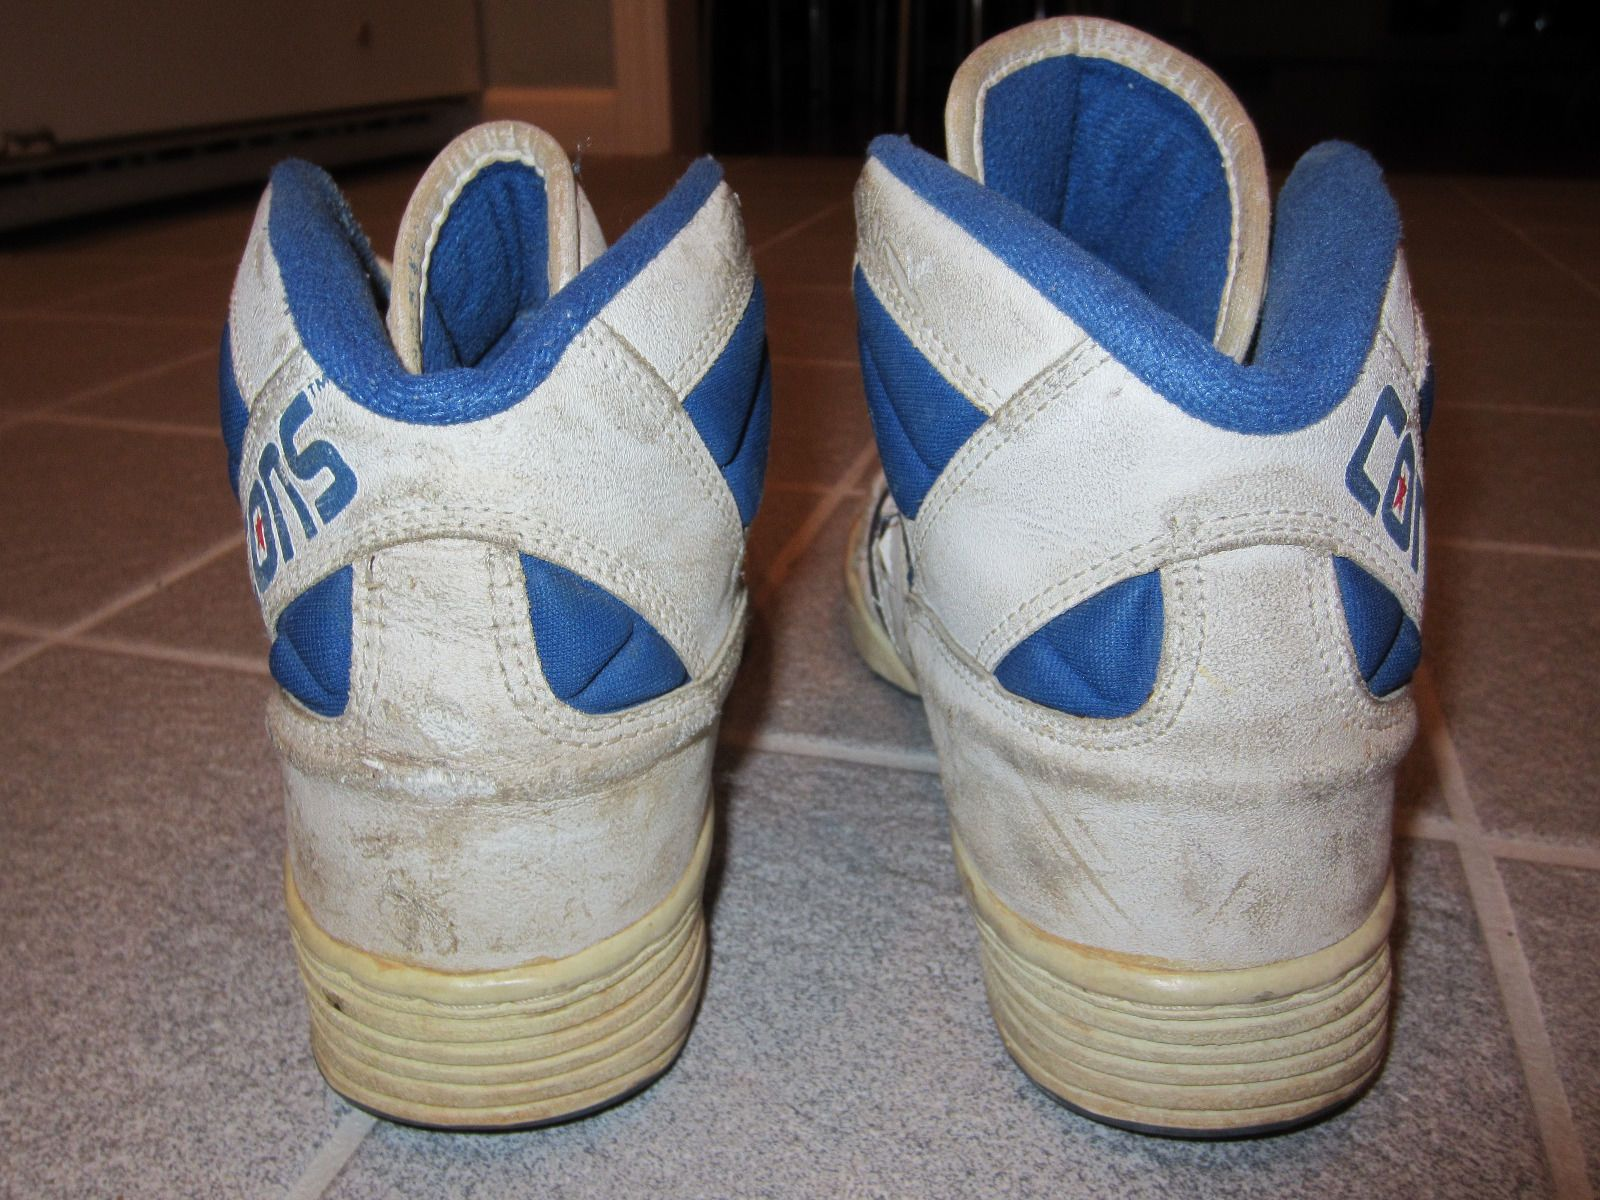 466b3dbb5ff9c0 1990s 80s Converse Vintage Cons Leather Basketball High Tops Mens Size 8 5